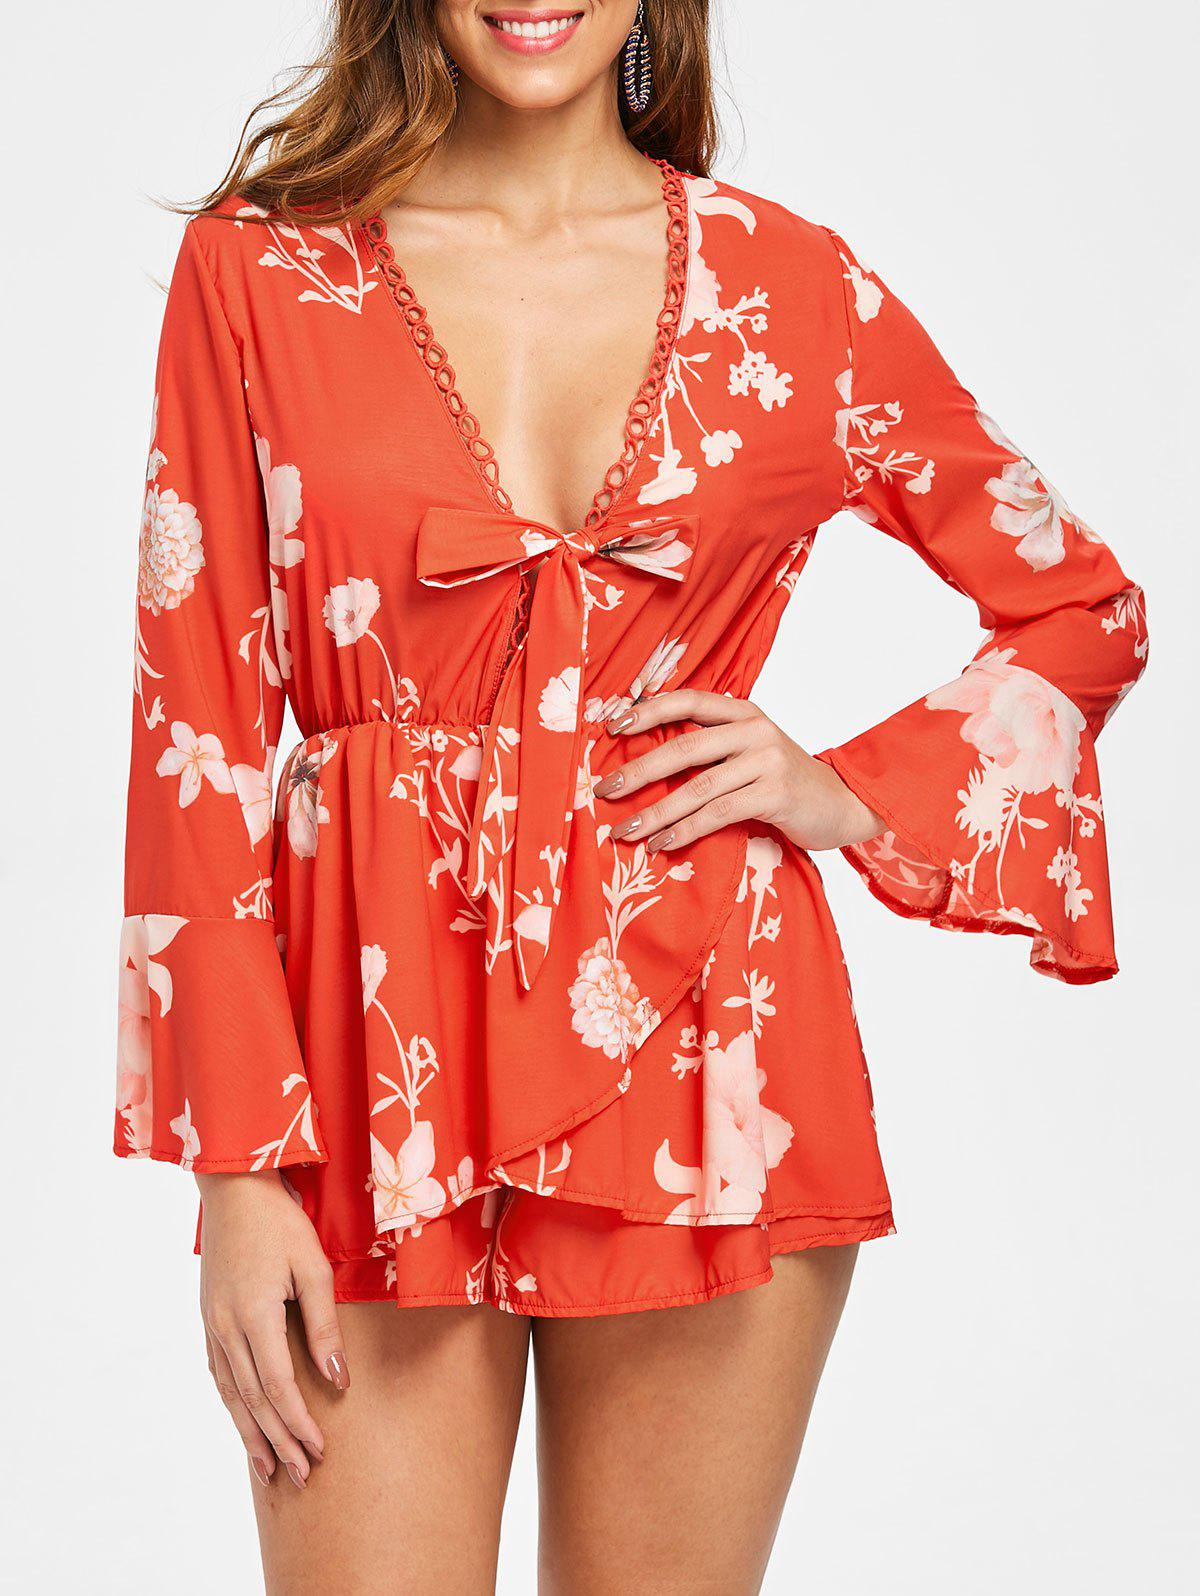 Floral Print Flare Sleeve Romper - RED M